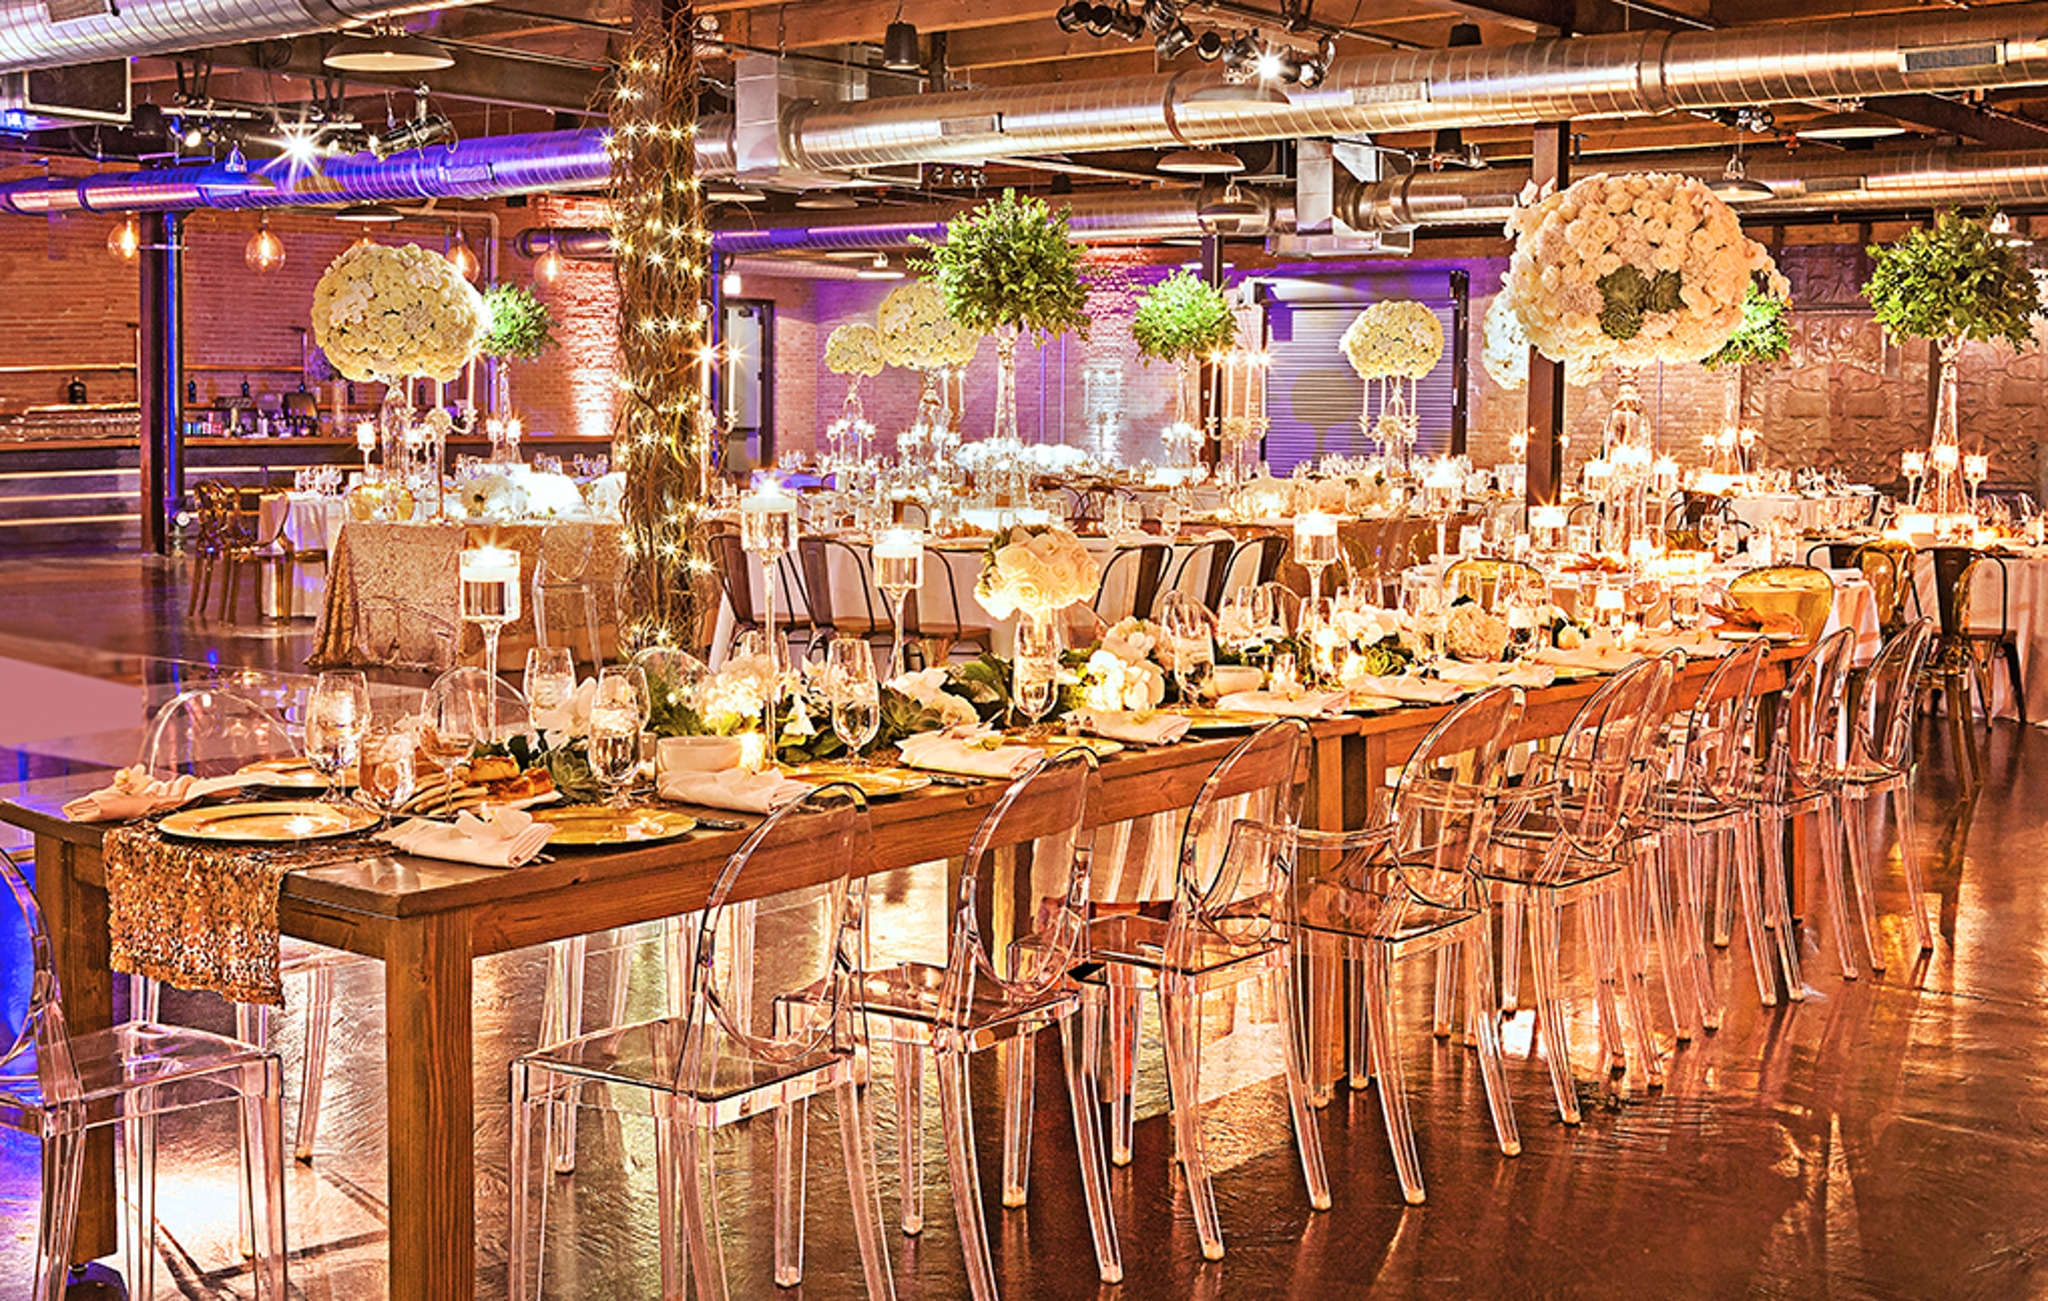 Chicago West Loop Wedding Venue - Morgan Manufacturing